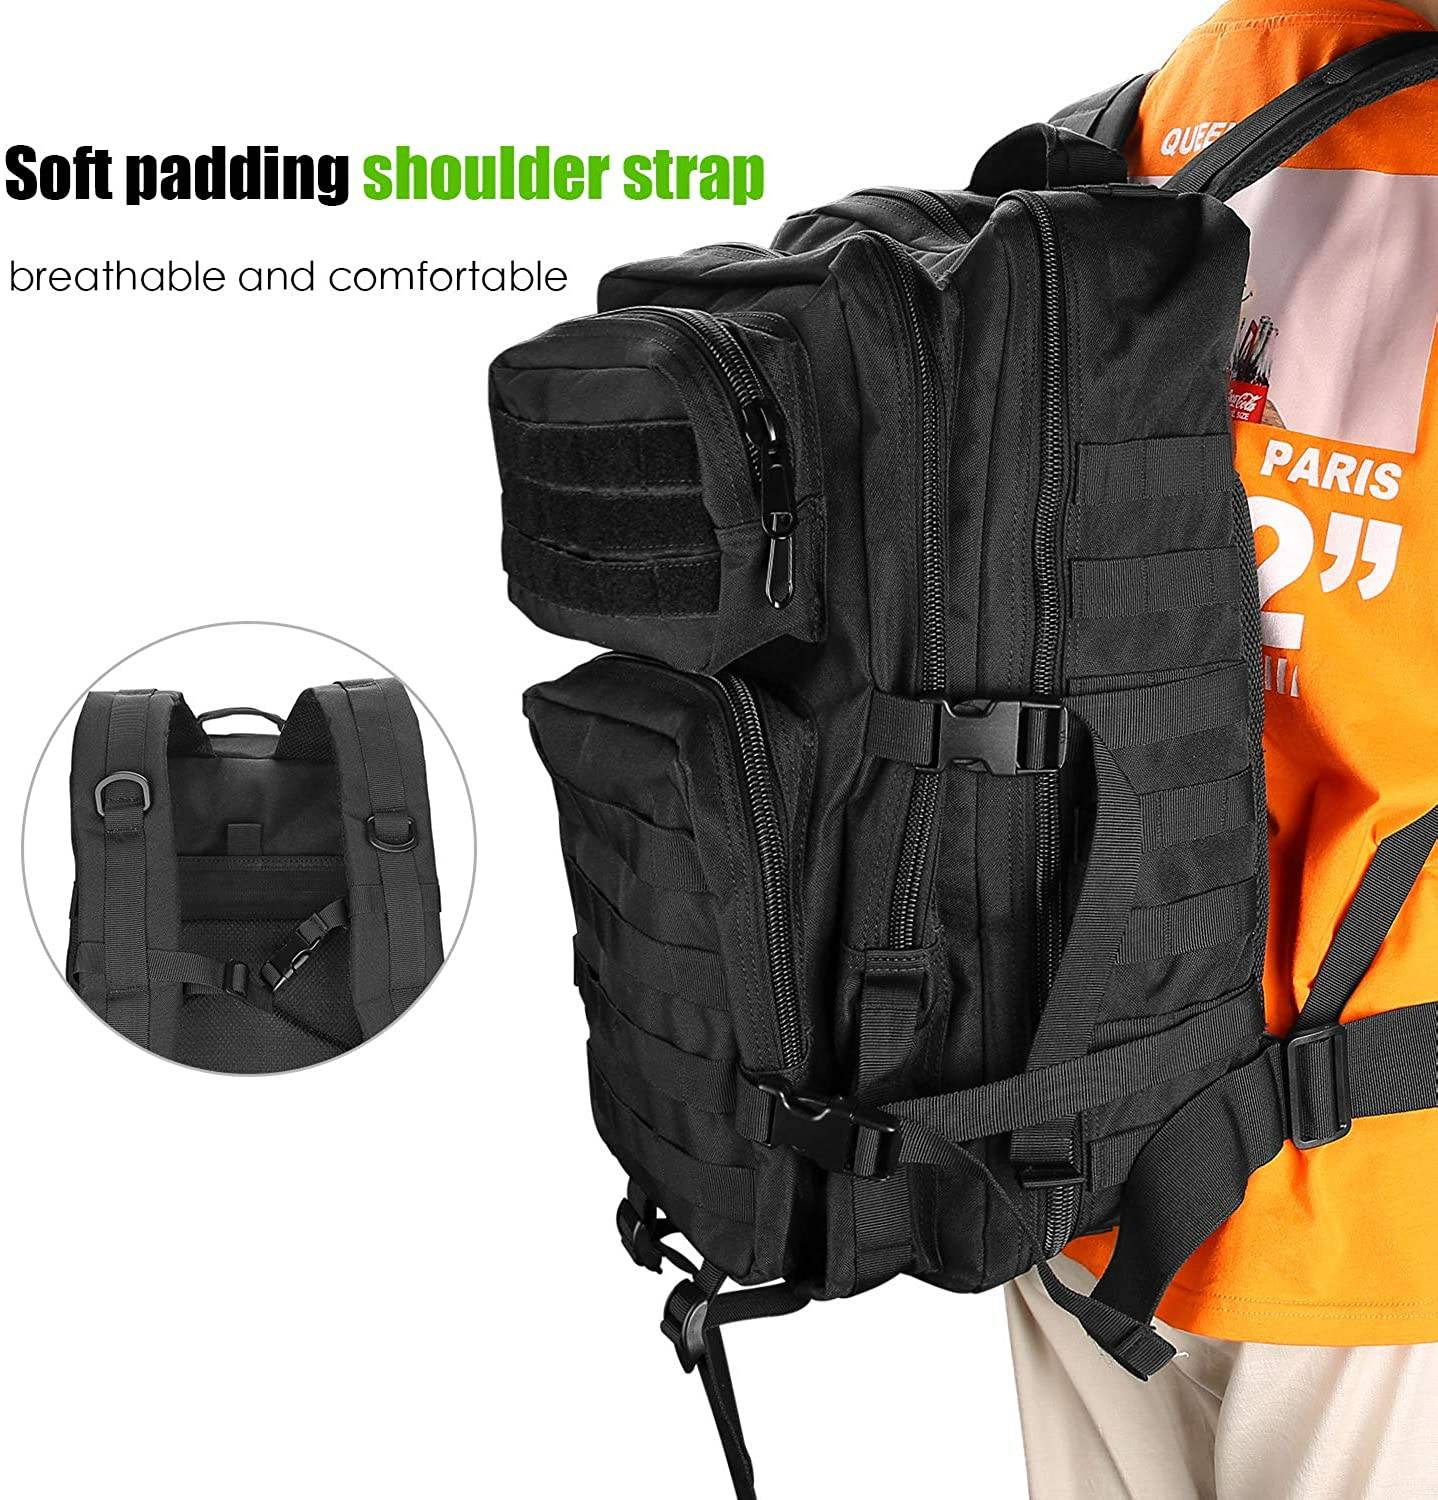   tactical backpack brands    tactical backpack amazon    tactical backpack made in usa    tactical backpack for guns    tactical backpack accessories    tactical backpack near me    tactical backpack patches    tactical backpack small    tactical backpack academy    tactical backpack ar pistol    tactical backpack armor    tactical backpack afterpay    tactical backpack australia    tactical backpack army    packing a tactical backpack    high and tactical backpack    what is a tactical backpack    how to clean a tactical backpack    how to make a tactical backpack    what is the best tactical backpack    what should be in a tactical go bag    tactical backpack black    tactical backpack bulletproof    tactical backpack body armor    tactical backpack baby    tactical backpack big 5    tactical backpack bass pro    tactical backpack best    b-tactical    tactical backpack cooler    tactical backpack companies    tactical backpack coyote brown    tactical backpack cheap    tactical backpack camo    tactical backpack clips    tactical backpack carry on    tactical backpack condor    s.o.c tactical backpack    tactical backpack dayz    tactical backpack diaper bag    tactical backpack drago    tactical backpack definition    tactical backpack dubai    tactical backpack dunham's    tactical backpack desert    tactical backpack discount  